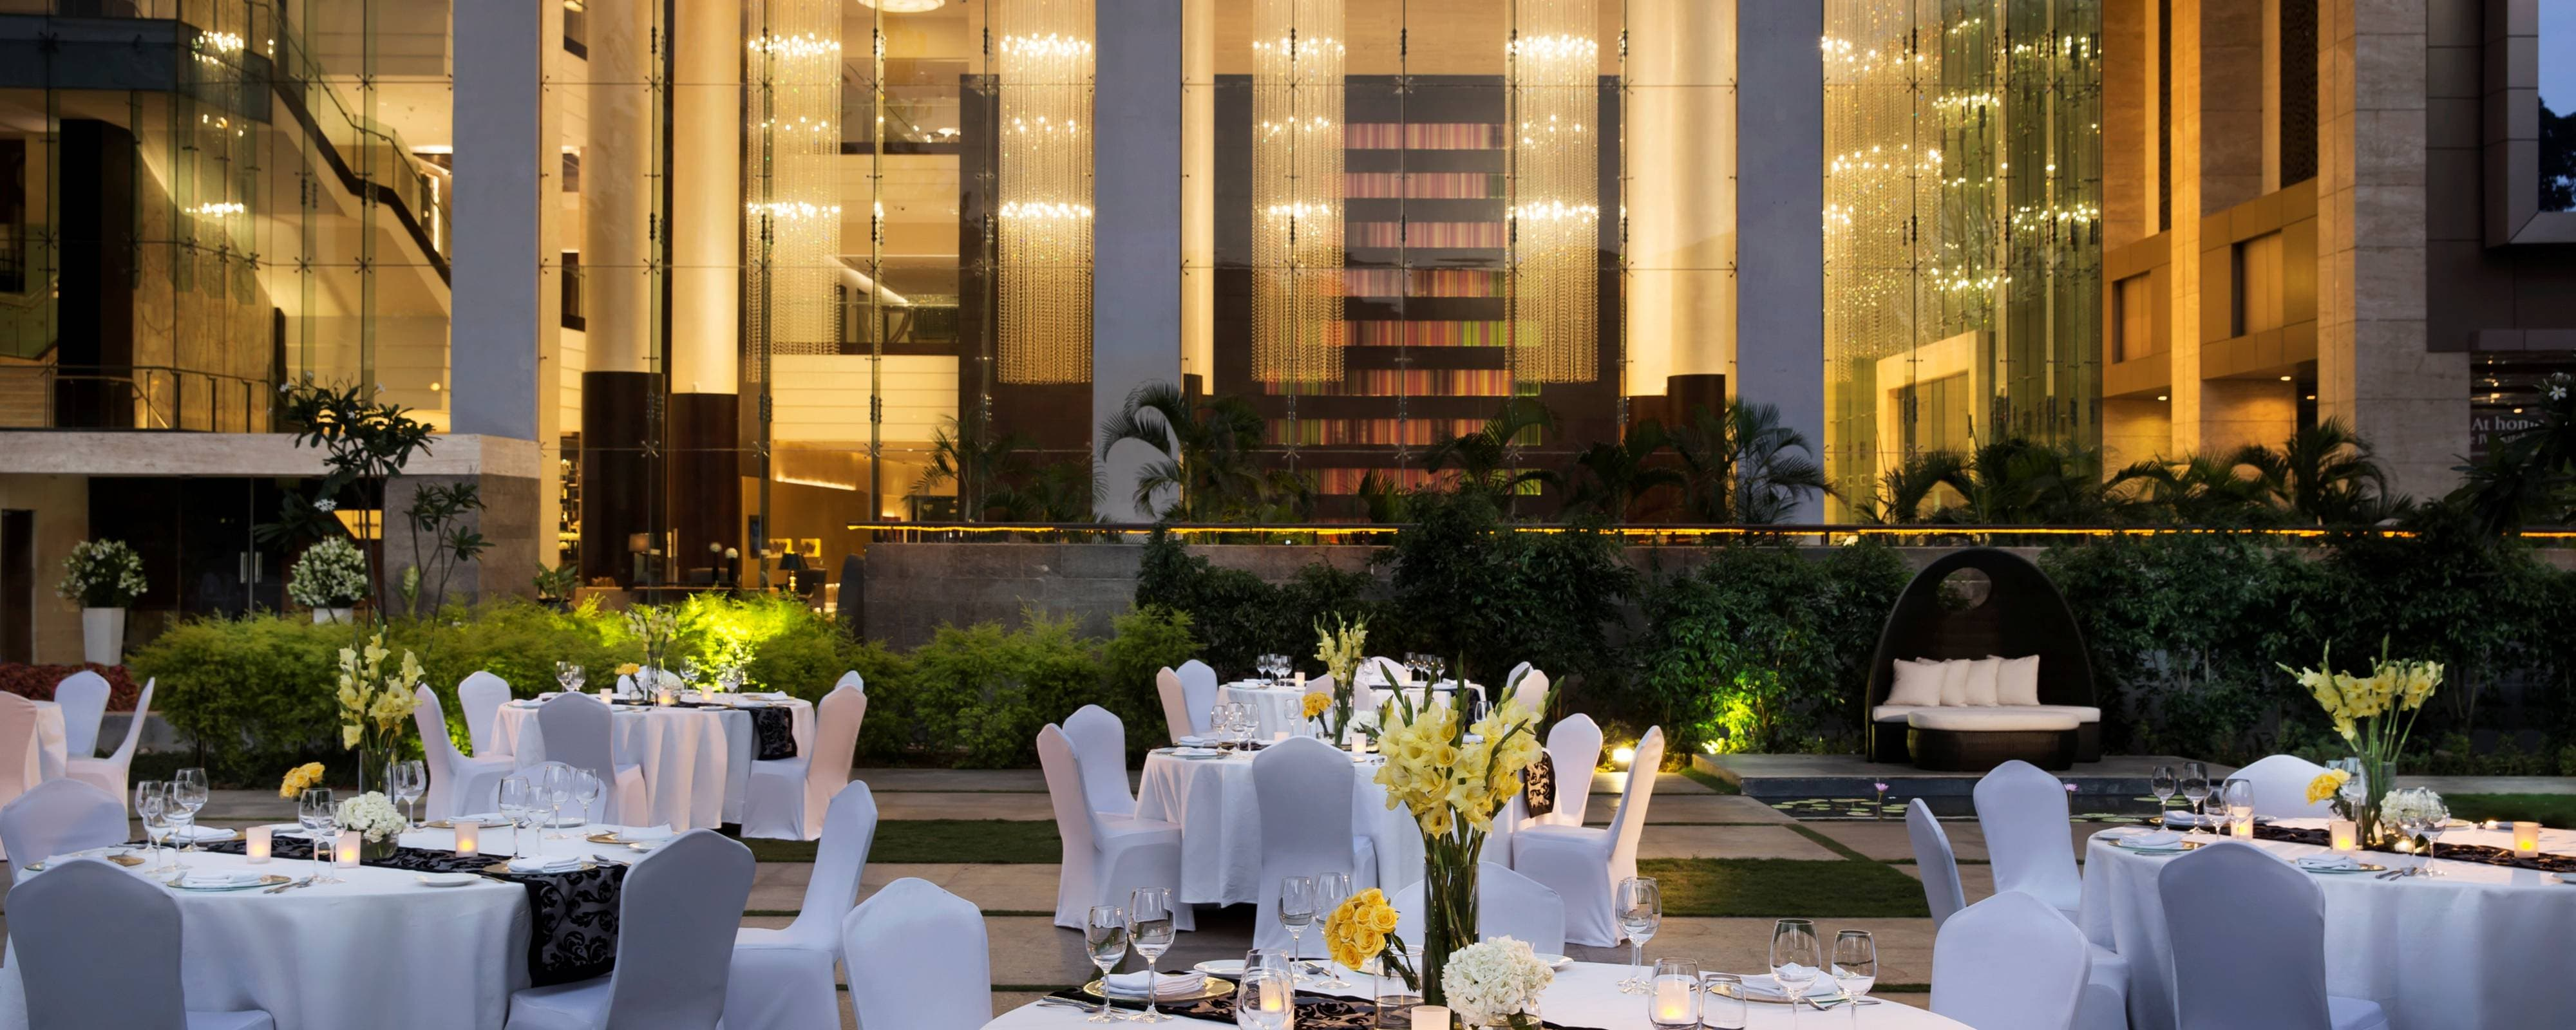 Wedding Venues In Bangalore India Jw Marriott Hotel Bengaluru